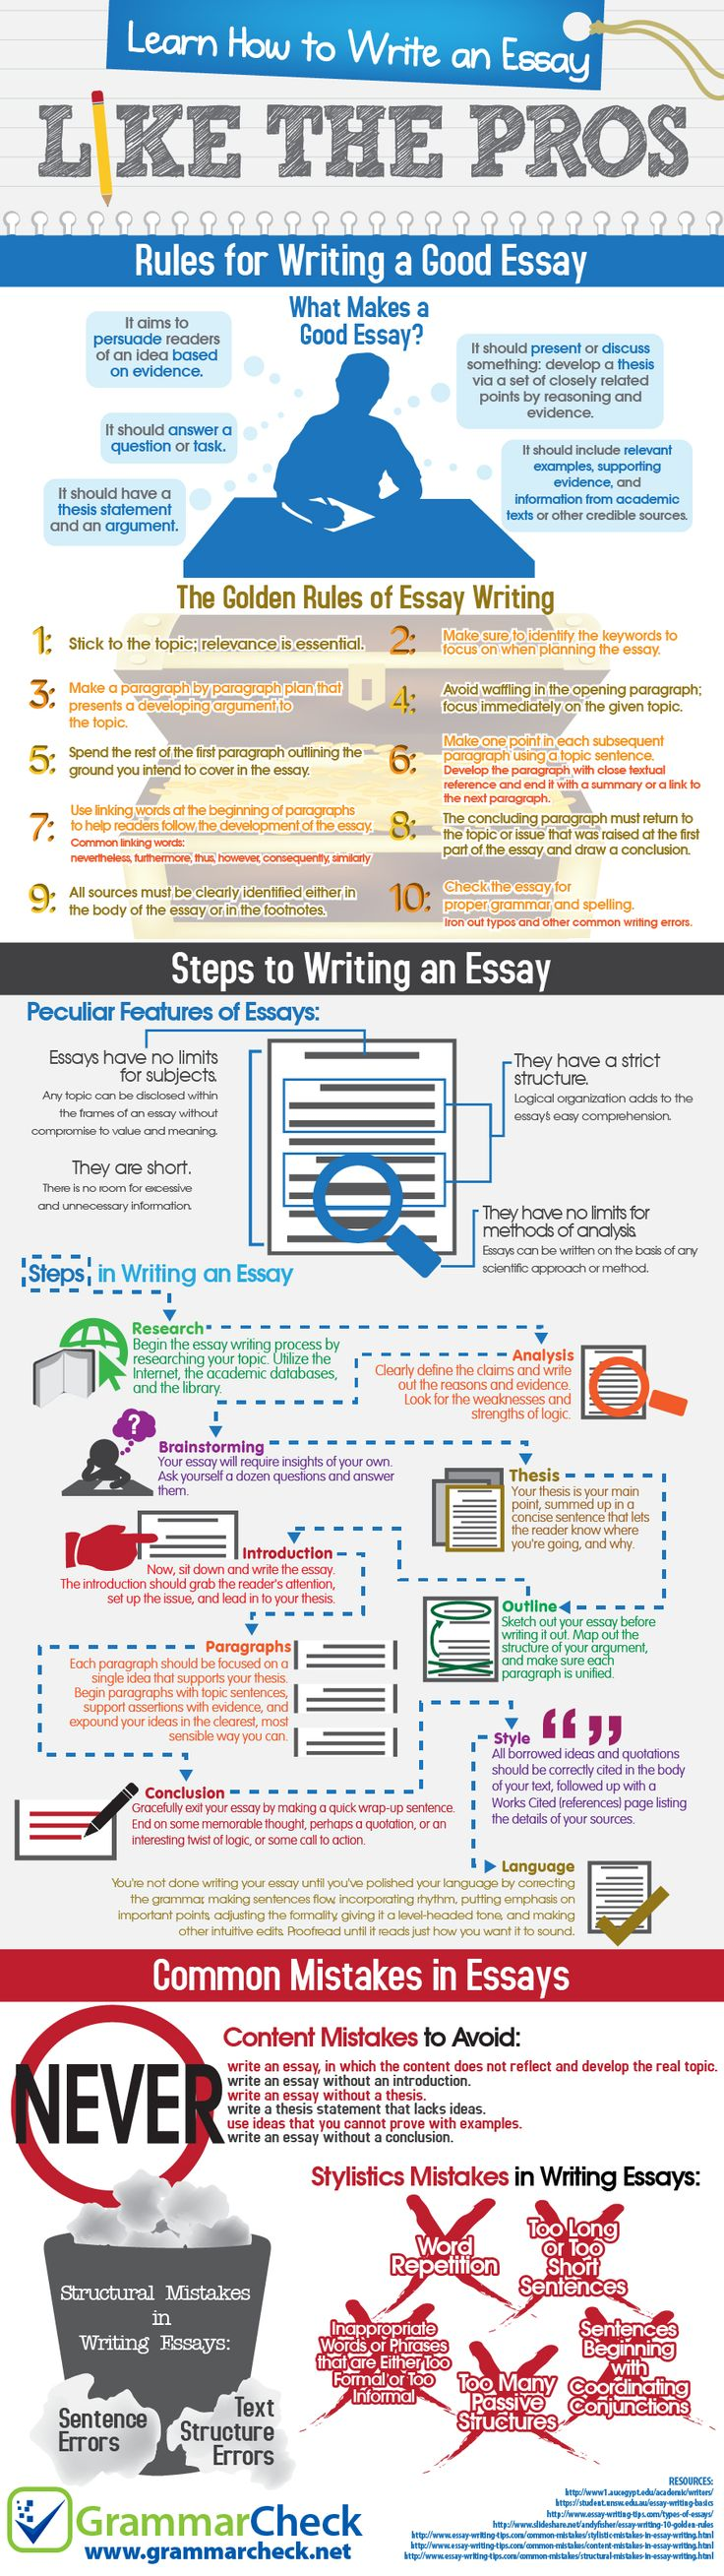 best ideas about essay writing essay writing how to write an essay like the pros this infographic gives concise examples and key tips on what to do how to do it and why you can apply this to any